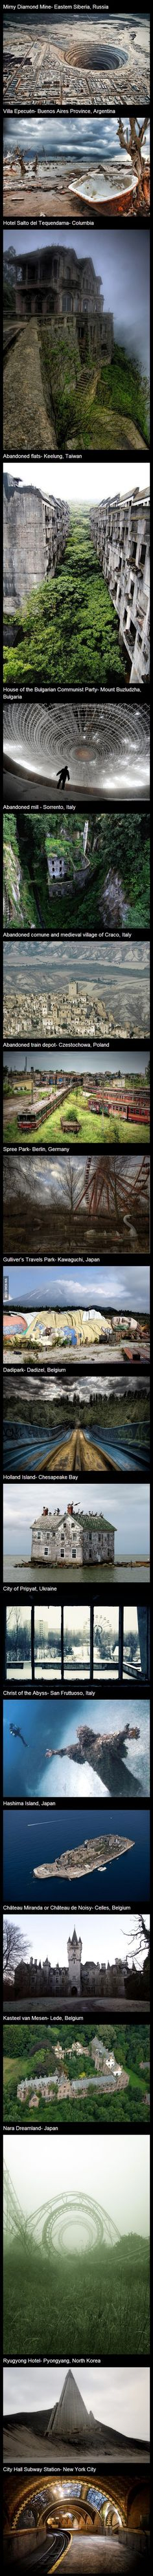 20 Cool Abandoned Places in the World